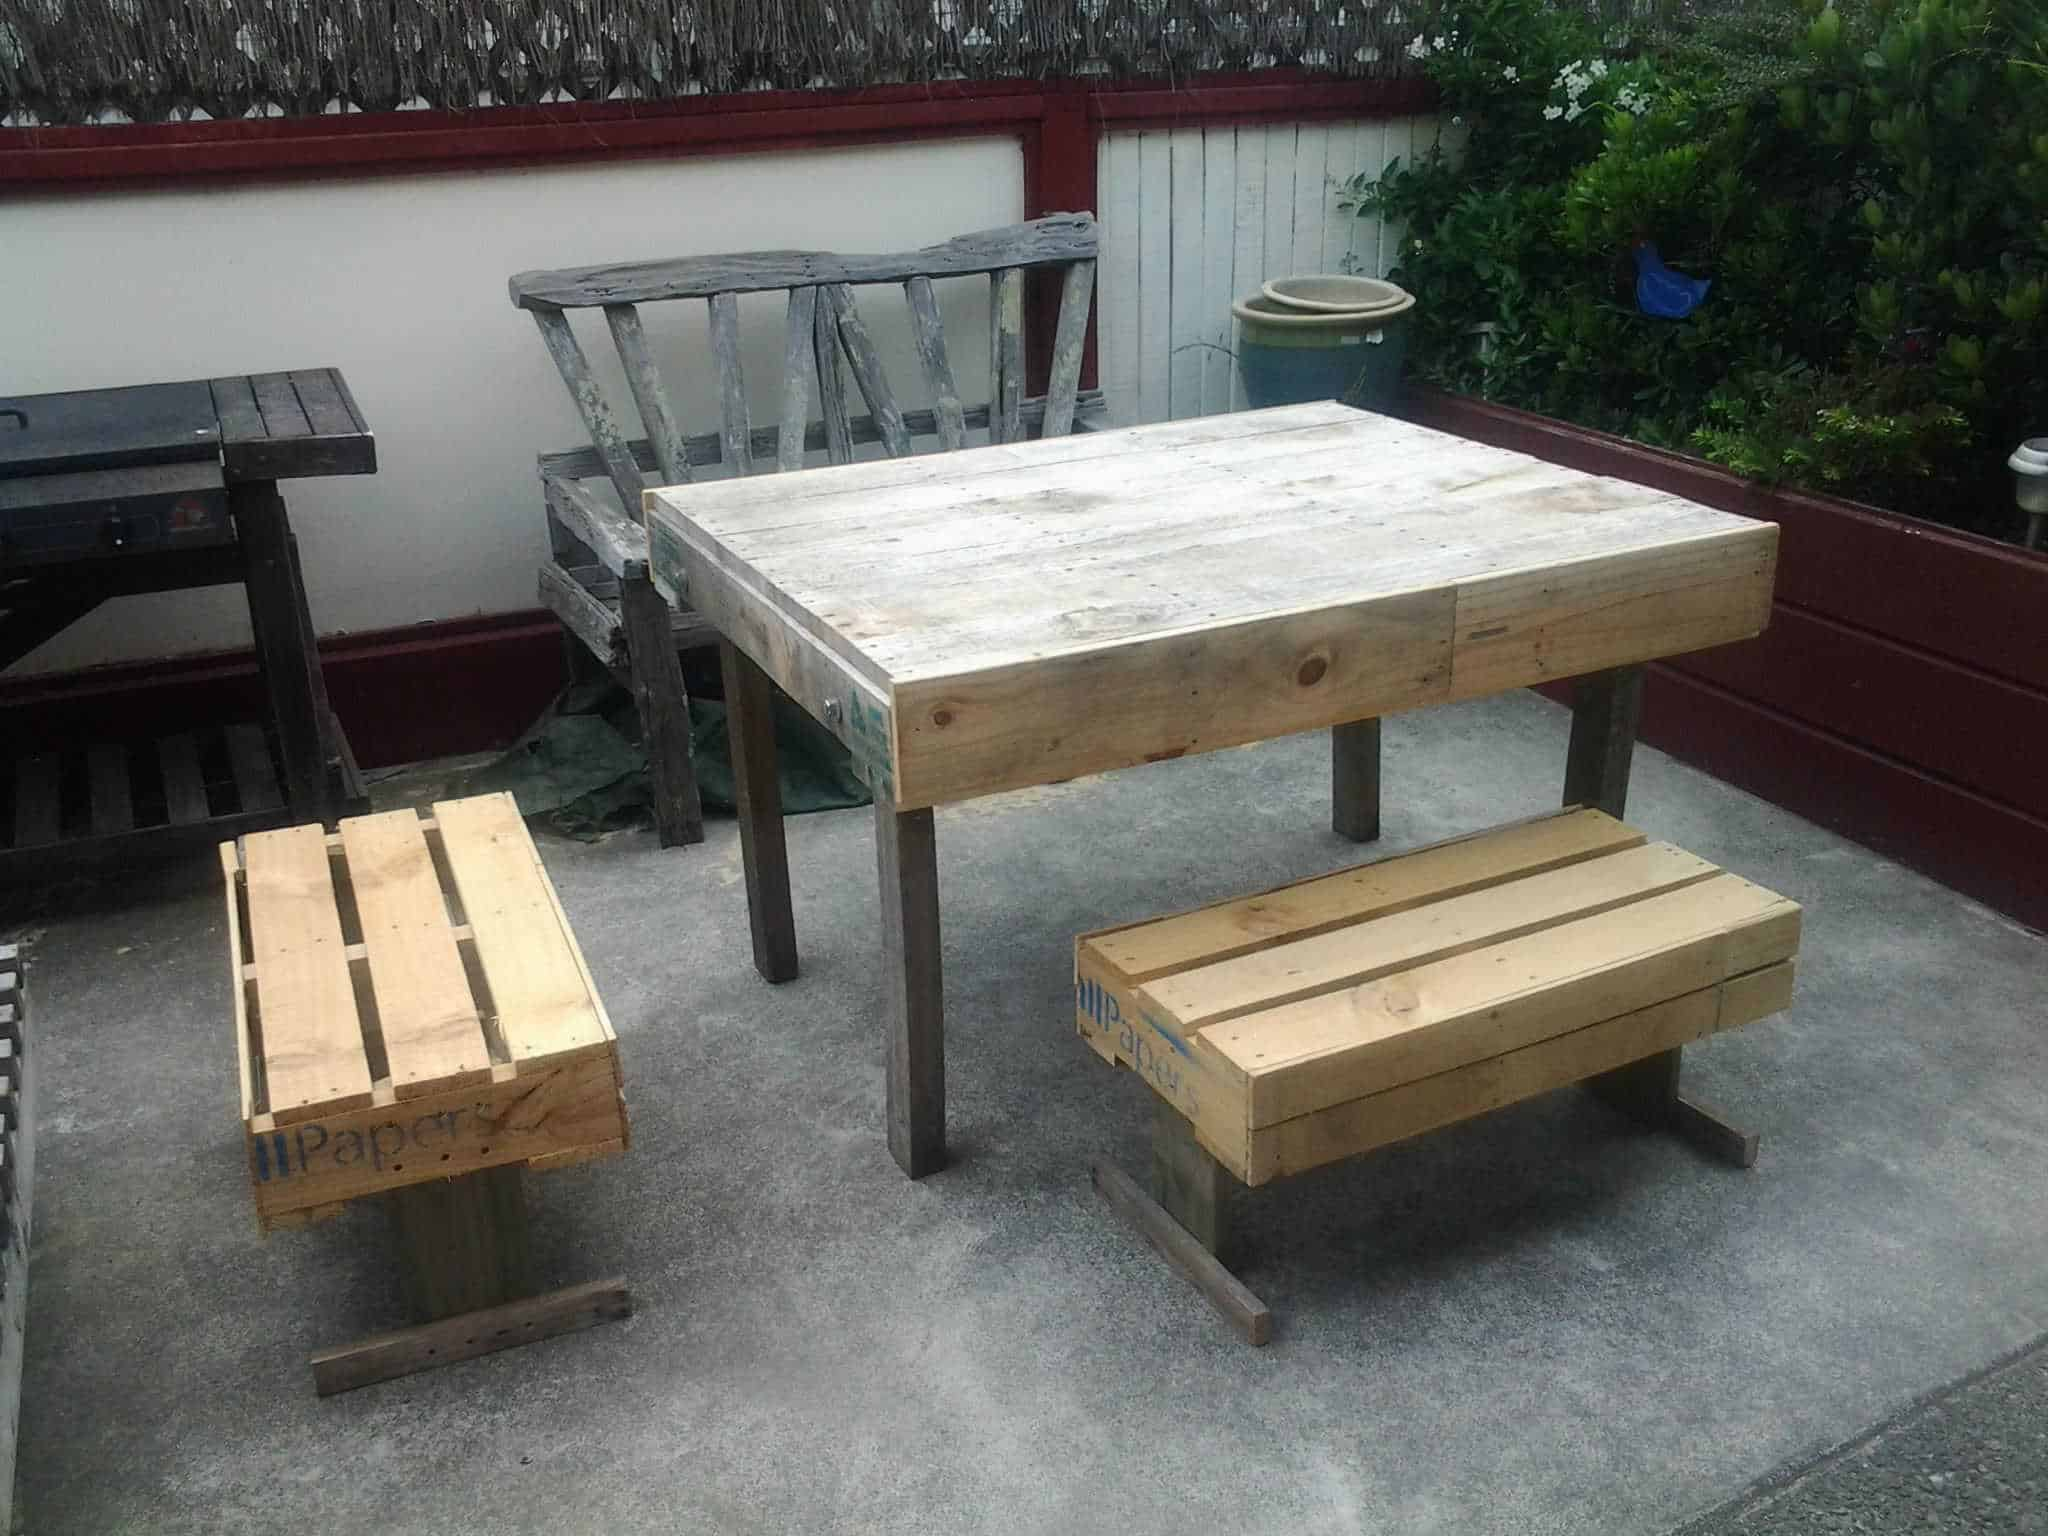 Outdoor Pallets Table amp Chairs Pallet Ideas 1001 Pallets : 1001palletscom outdoor pallets table chairs 2 from www.1001pallets.com size 2048 x 1536 jpeg 215kB